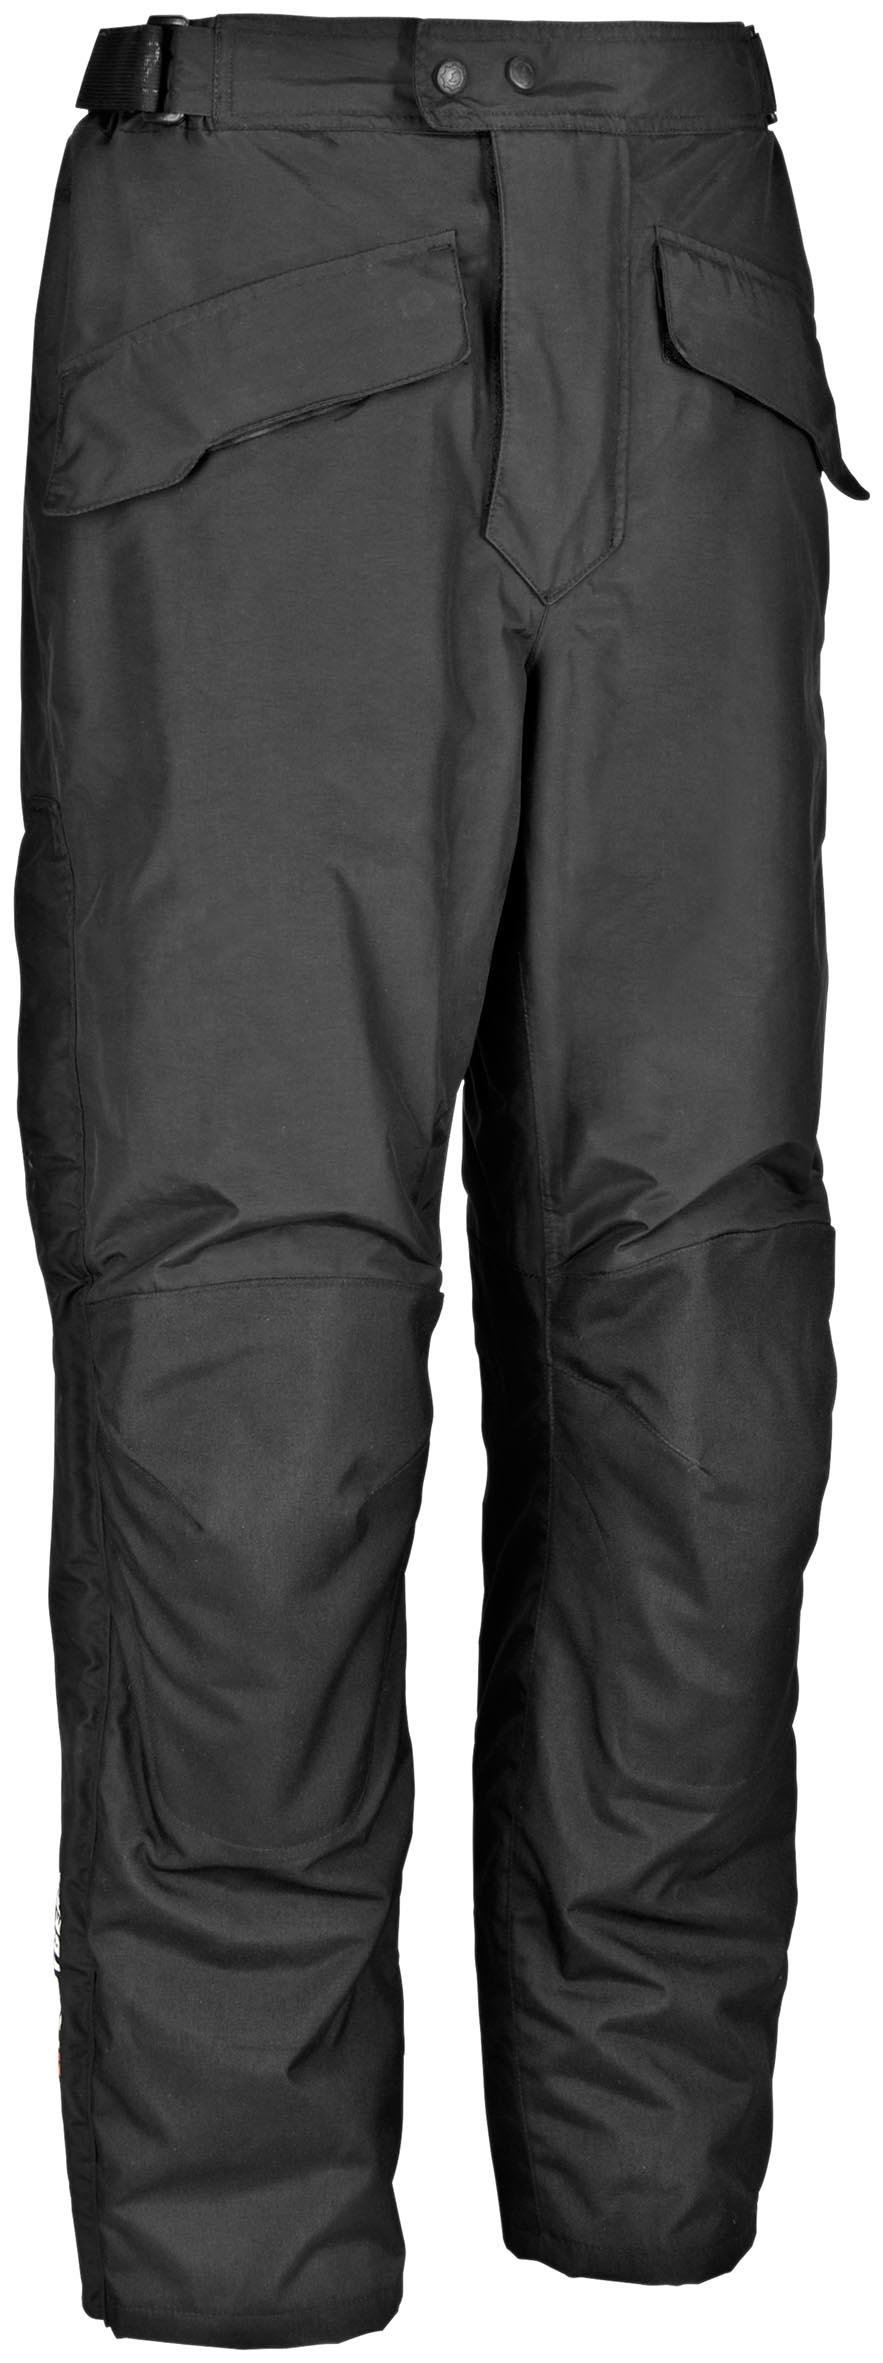 FirstGear HT Overpants Shell Men's Textile Sports Bike Racing Motorcycle Pants - Black / Size 46